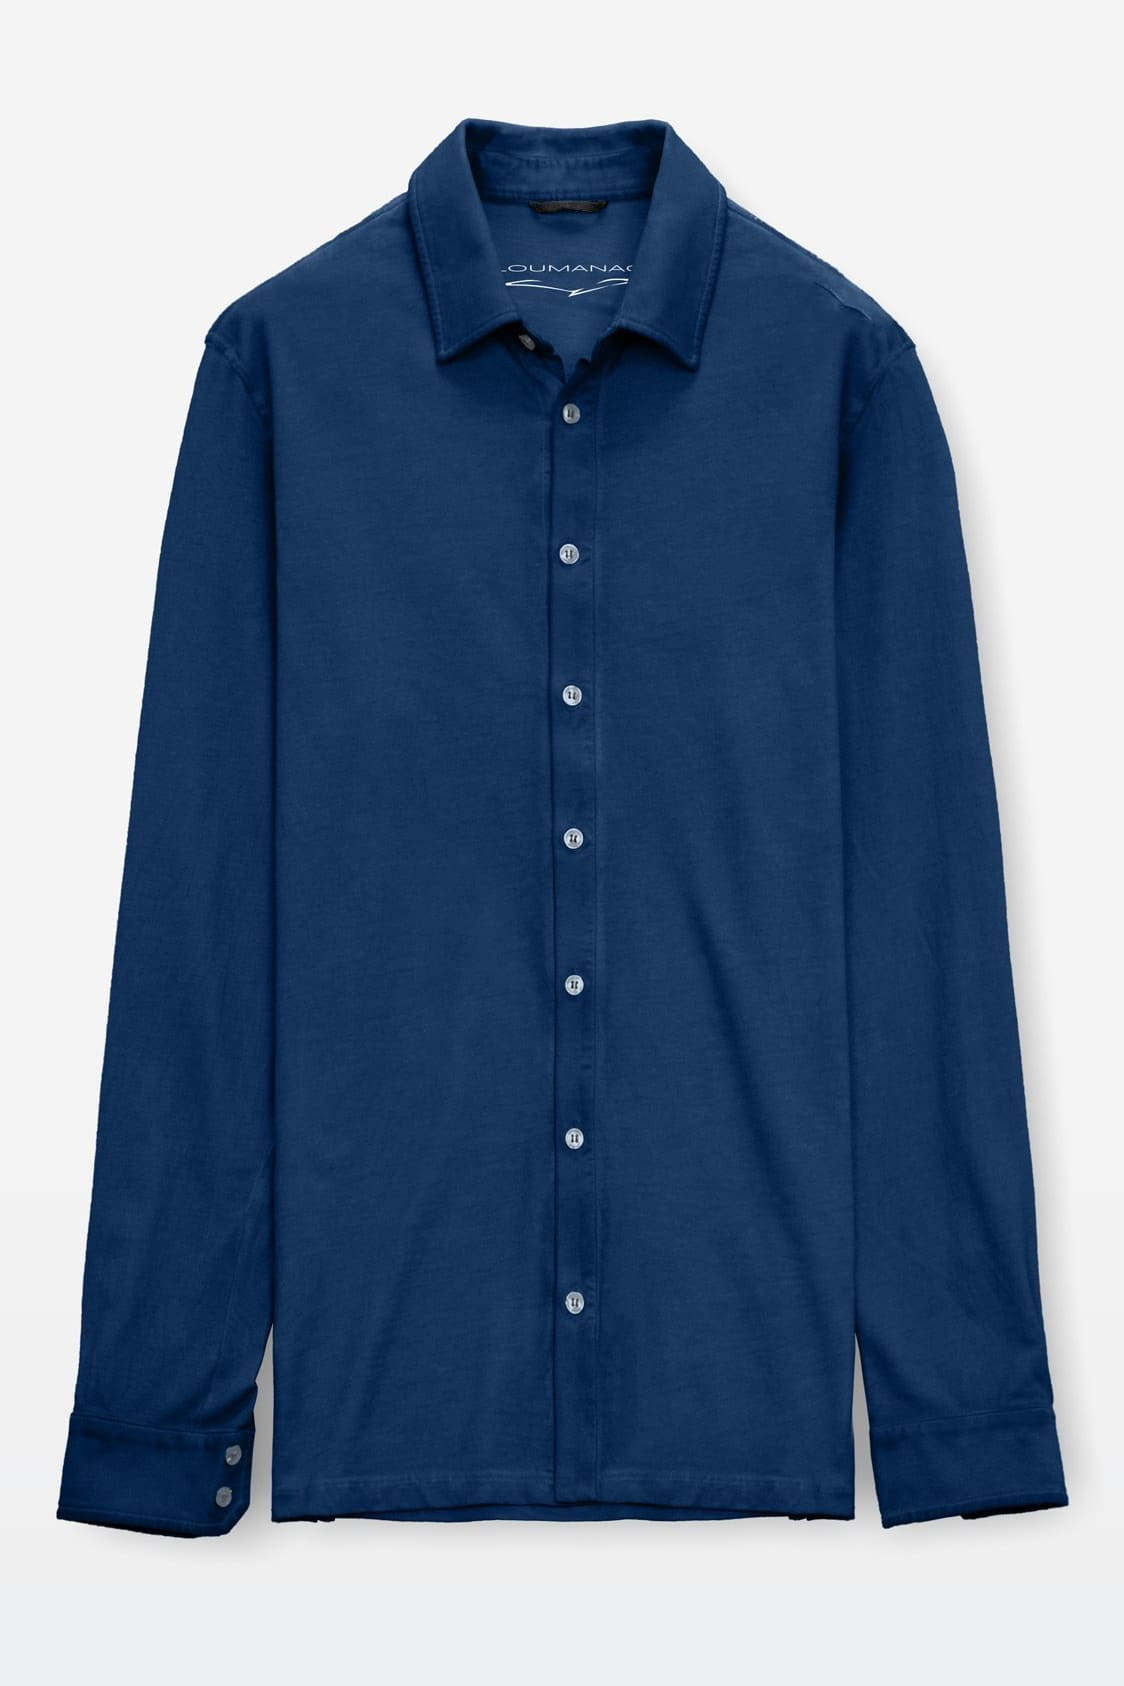 Stretch Cotton Pique Shirt - Navy - Shirts